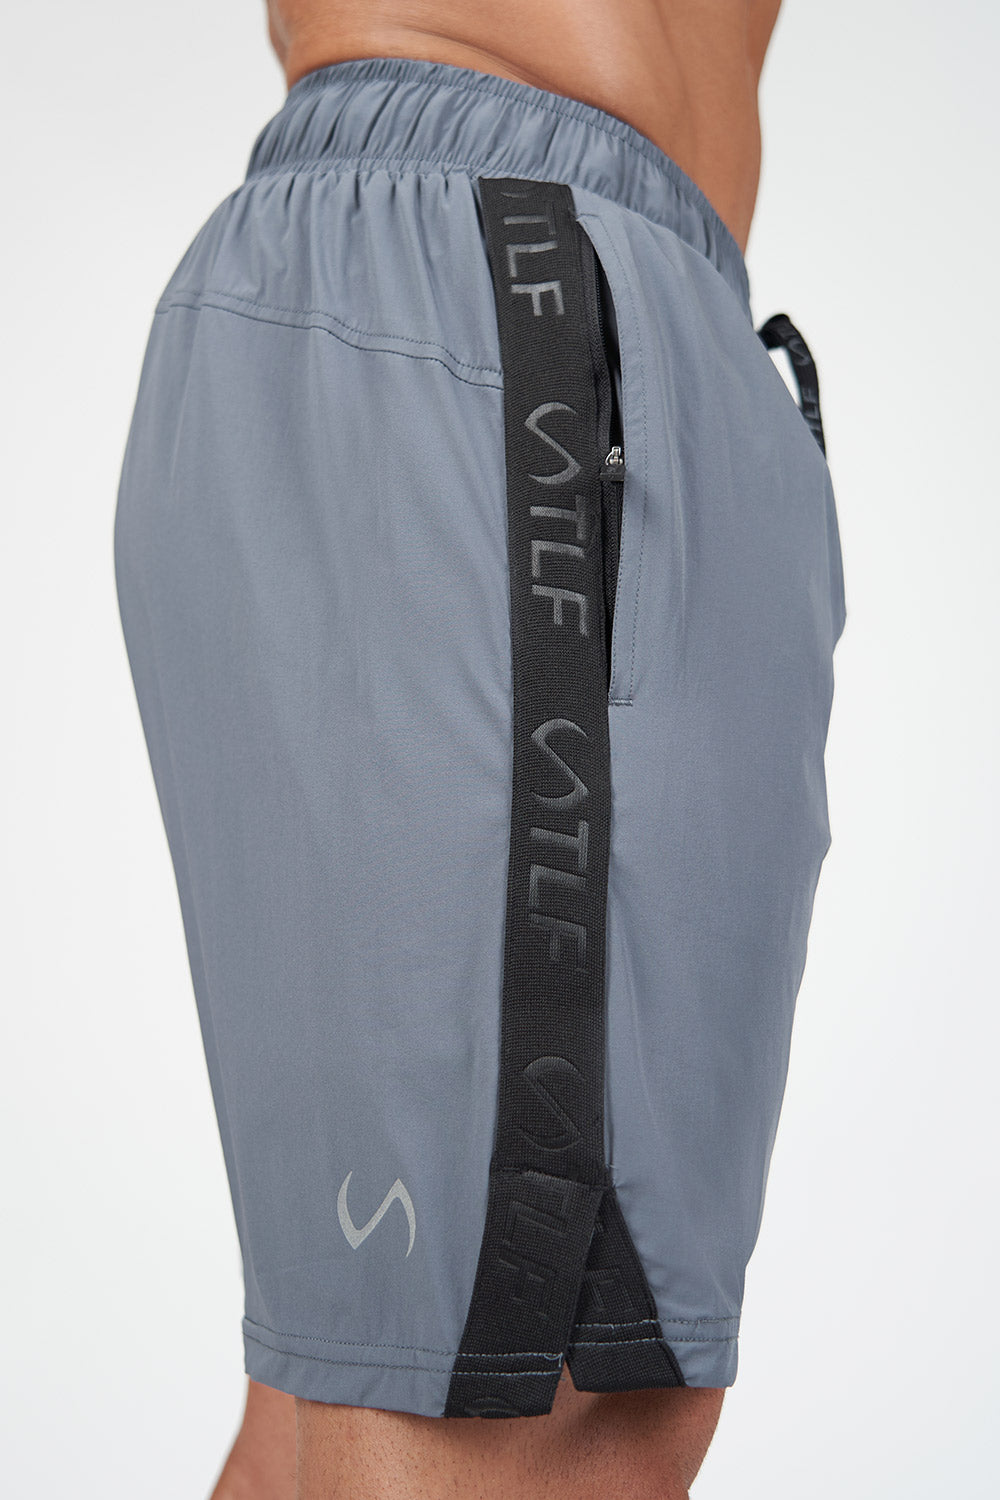 TLF Element Air-Flex Gym Shorts - TLF Apparel | Take Life Further